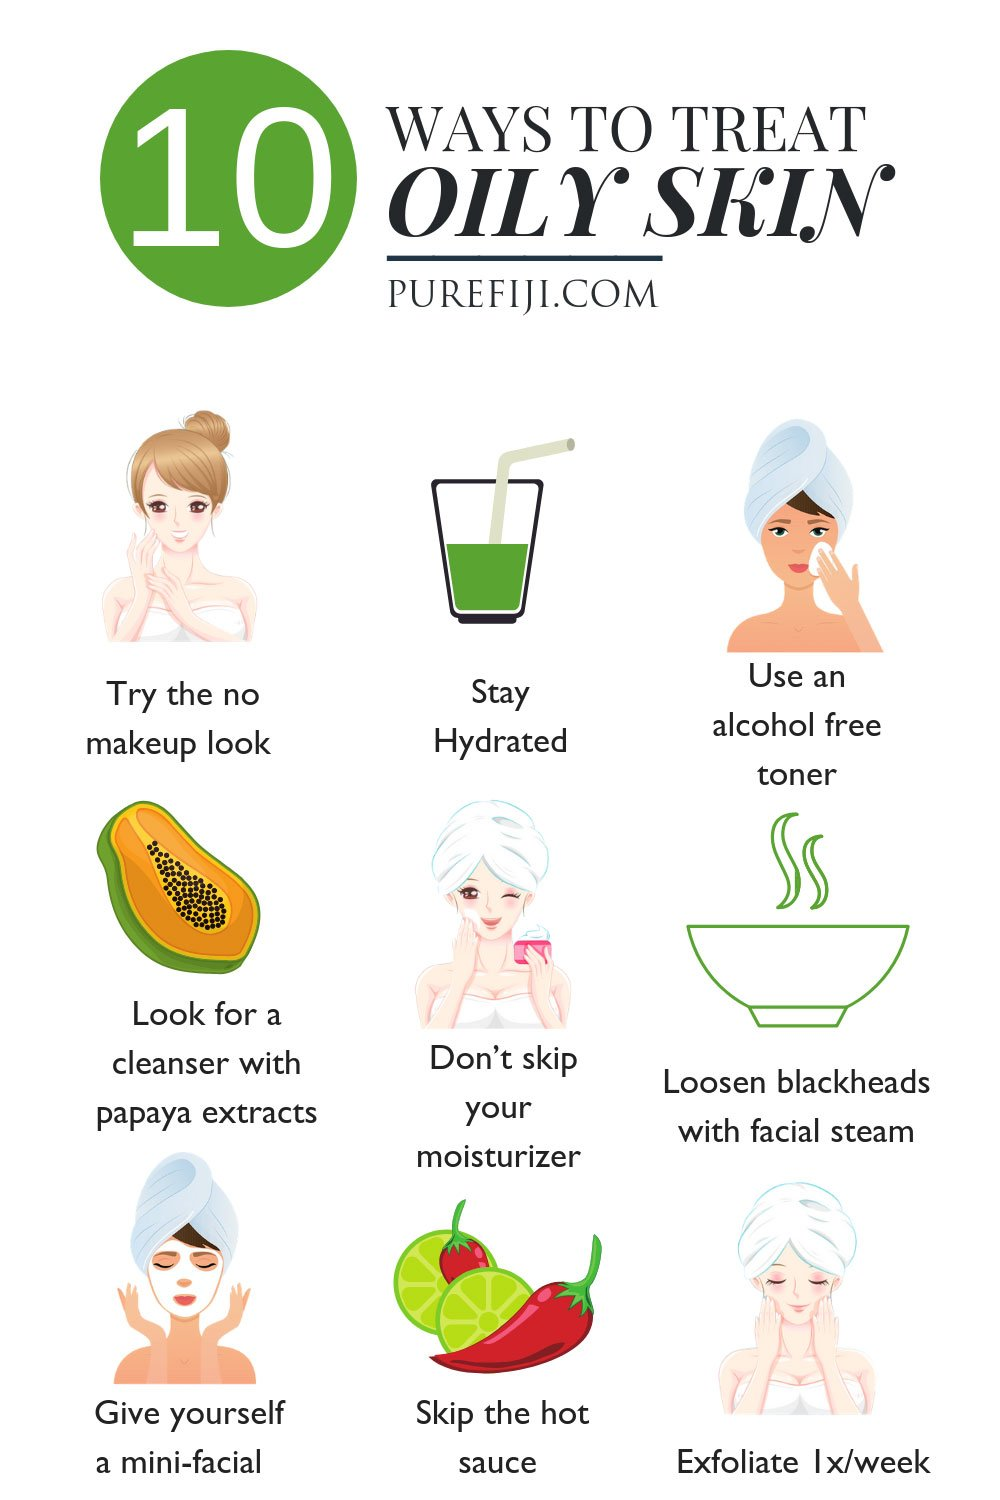 10 ways to treat oily skin